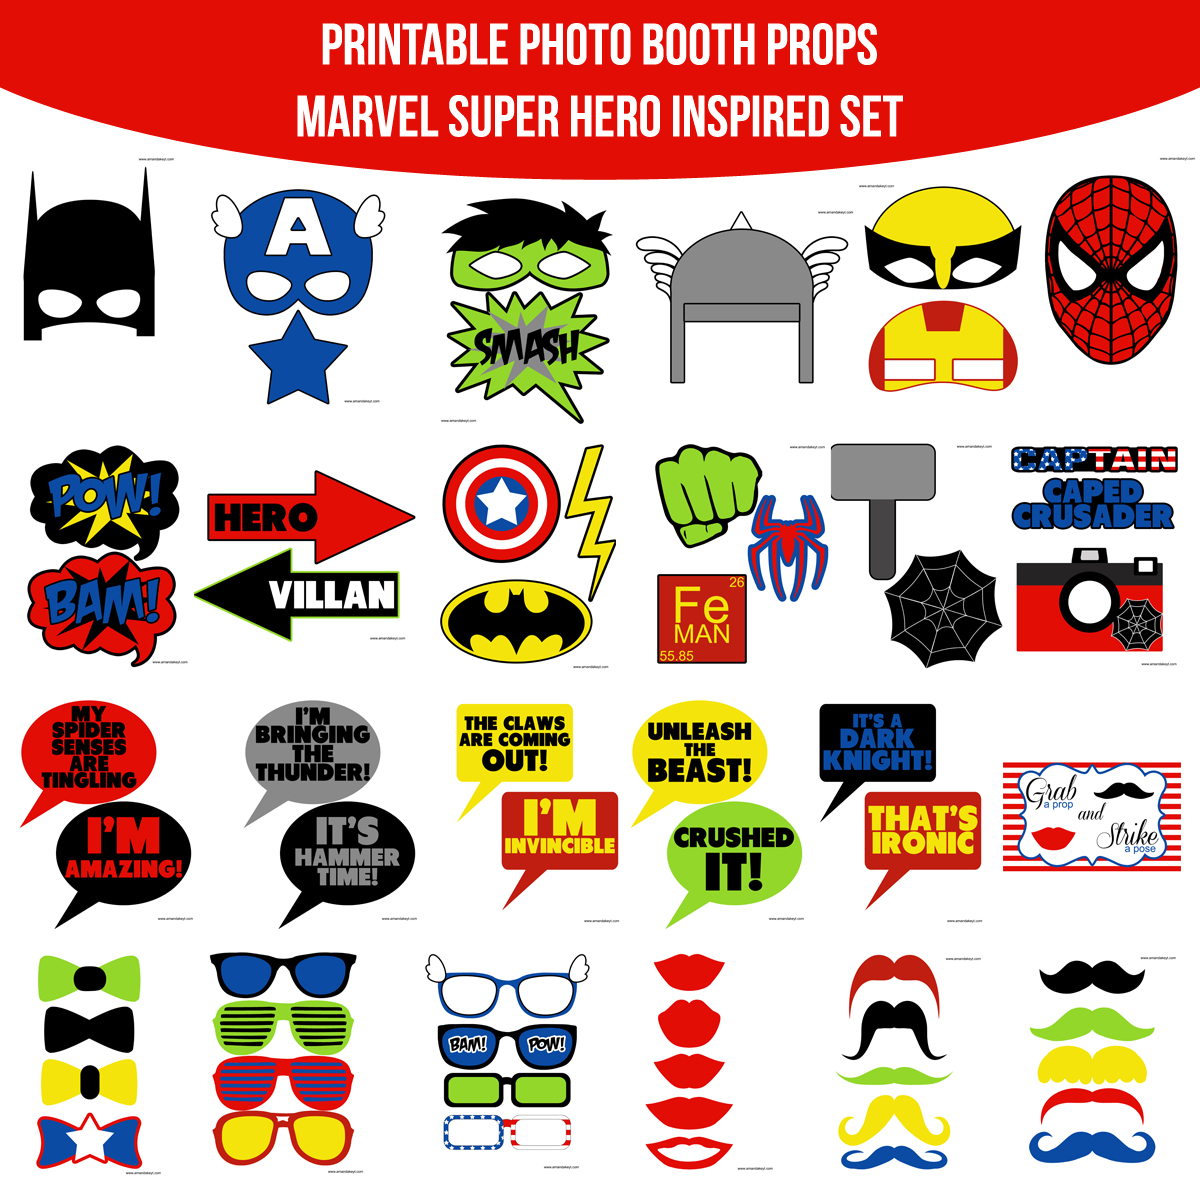 photograph about Free Printable Superhero Photo Booth Props titled Publications Videos Tv set Amanda Keyt Printable Plans